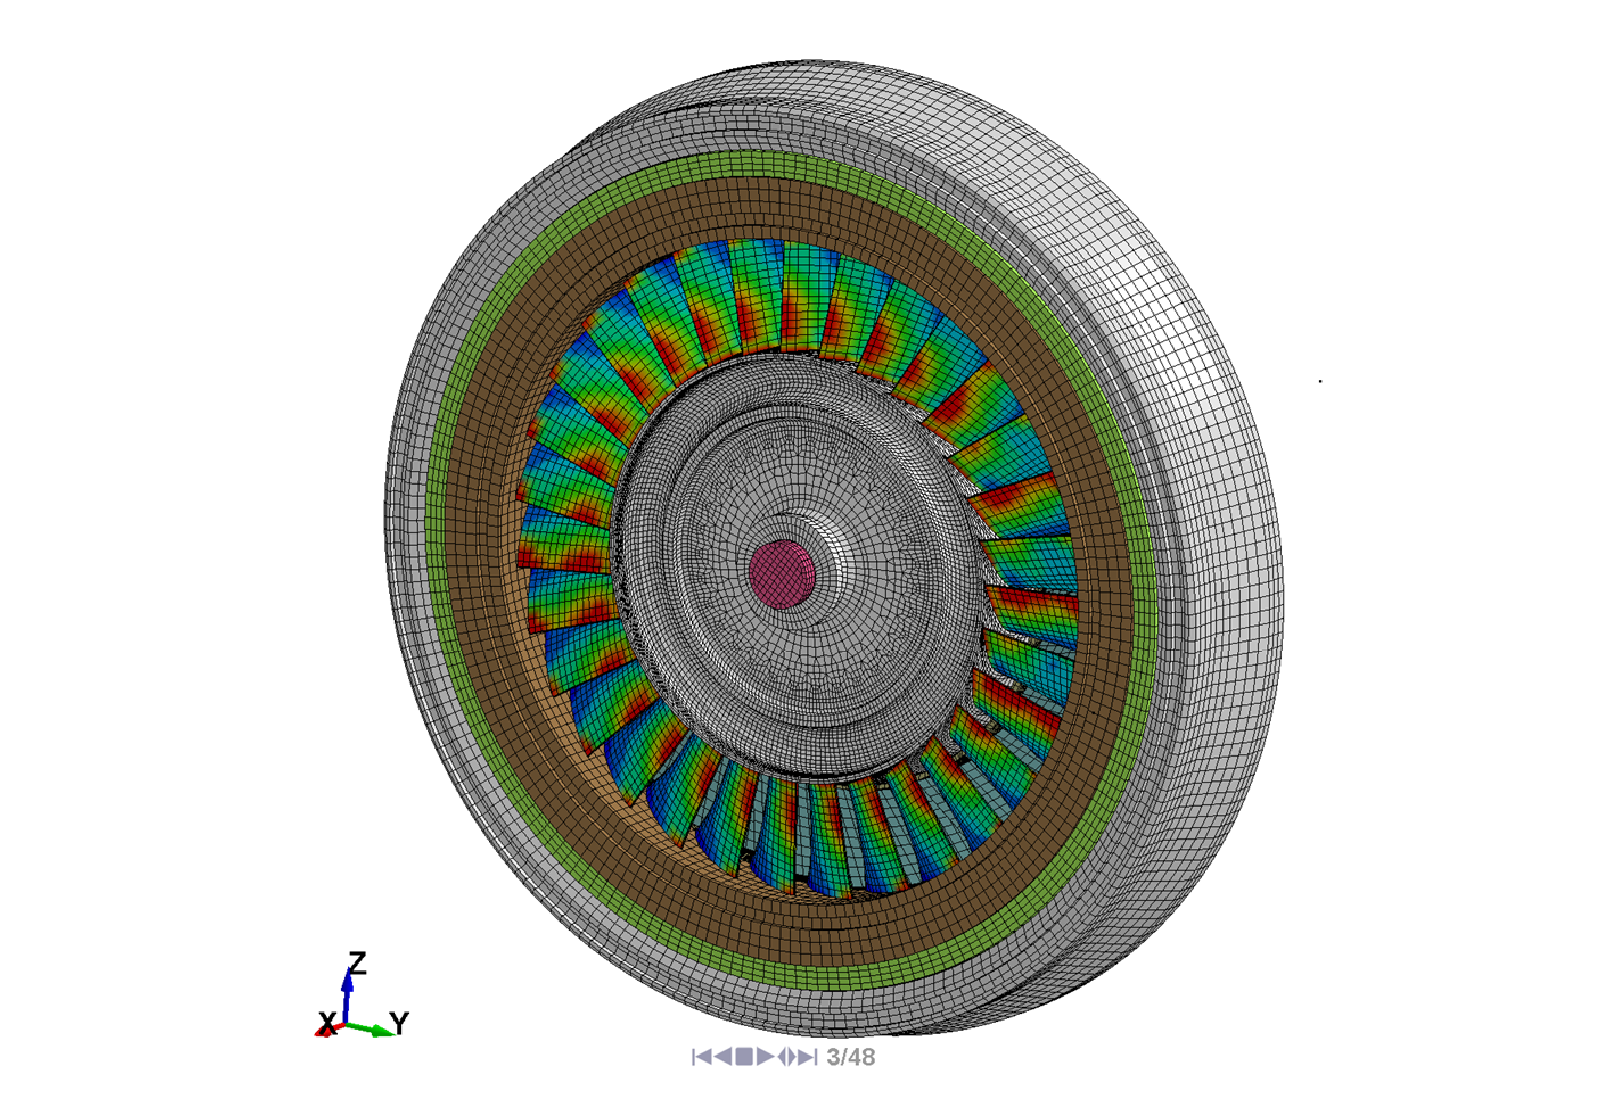 Figure 3: Implicit spin-up is used to set the stress state in the turbine blade prior to the burst simulation or fusing of the disk.